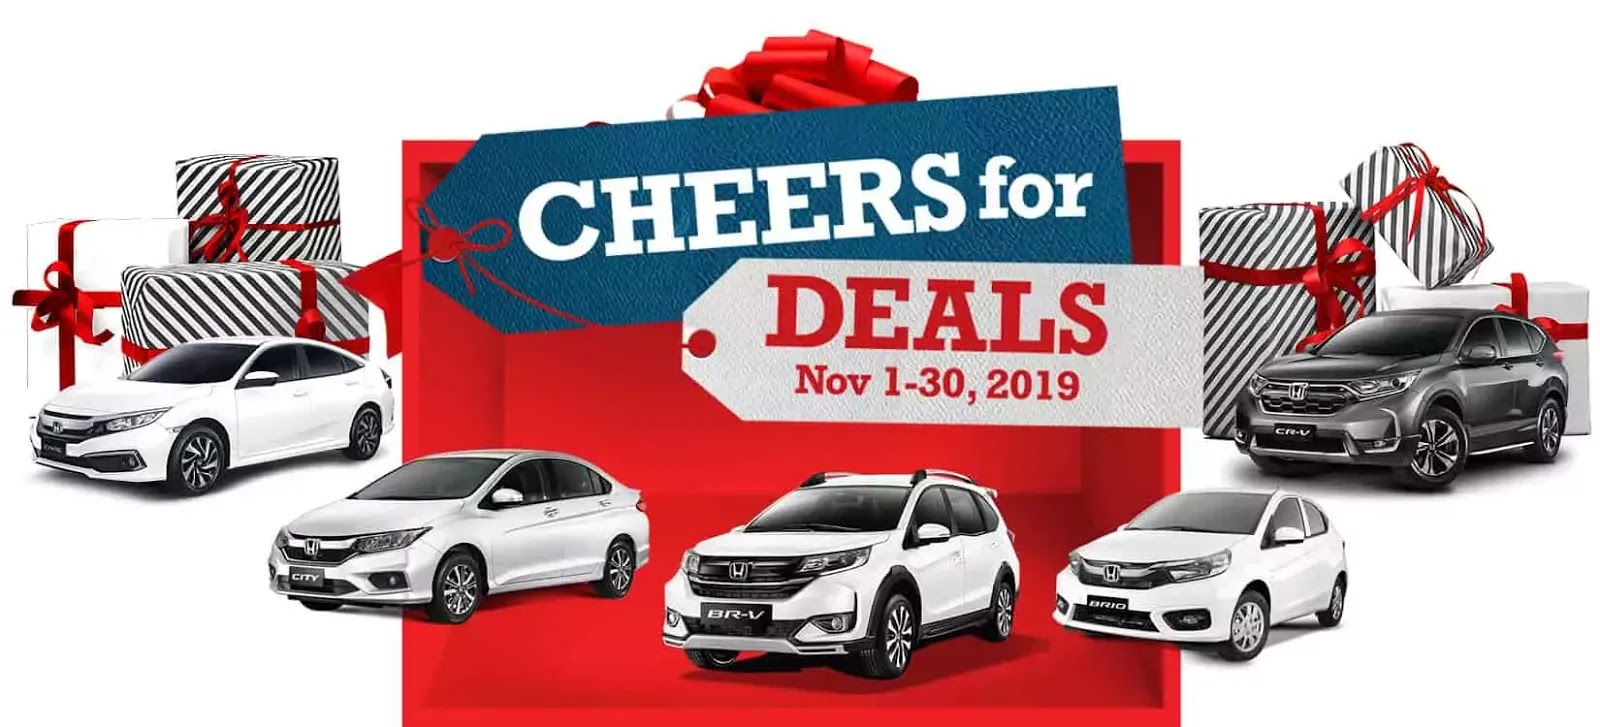 Honda Cheers for Deals Holiday Promo